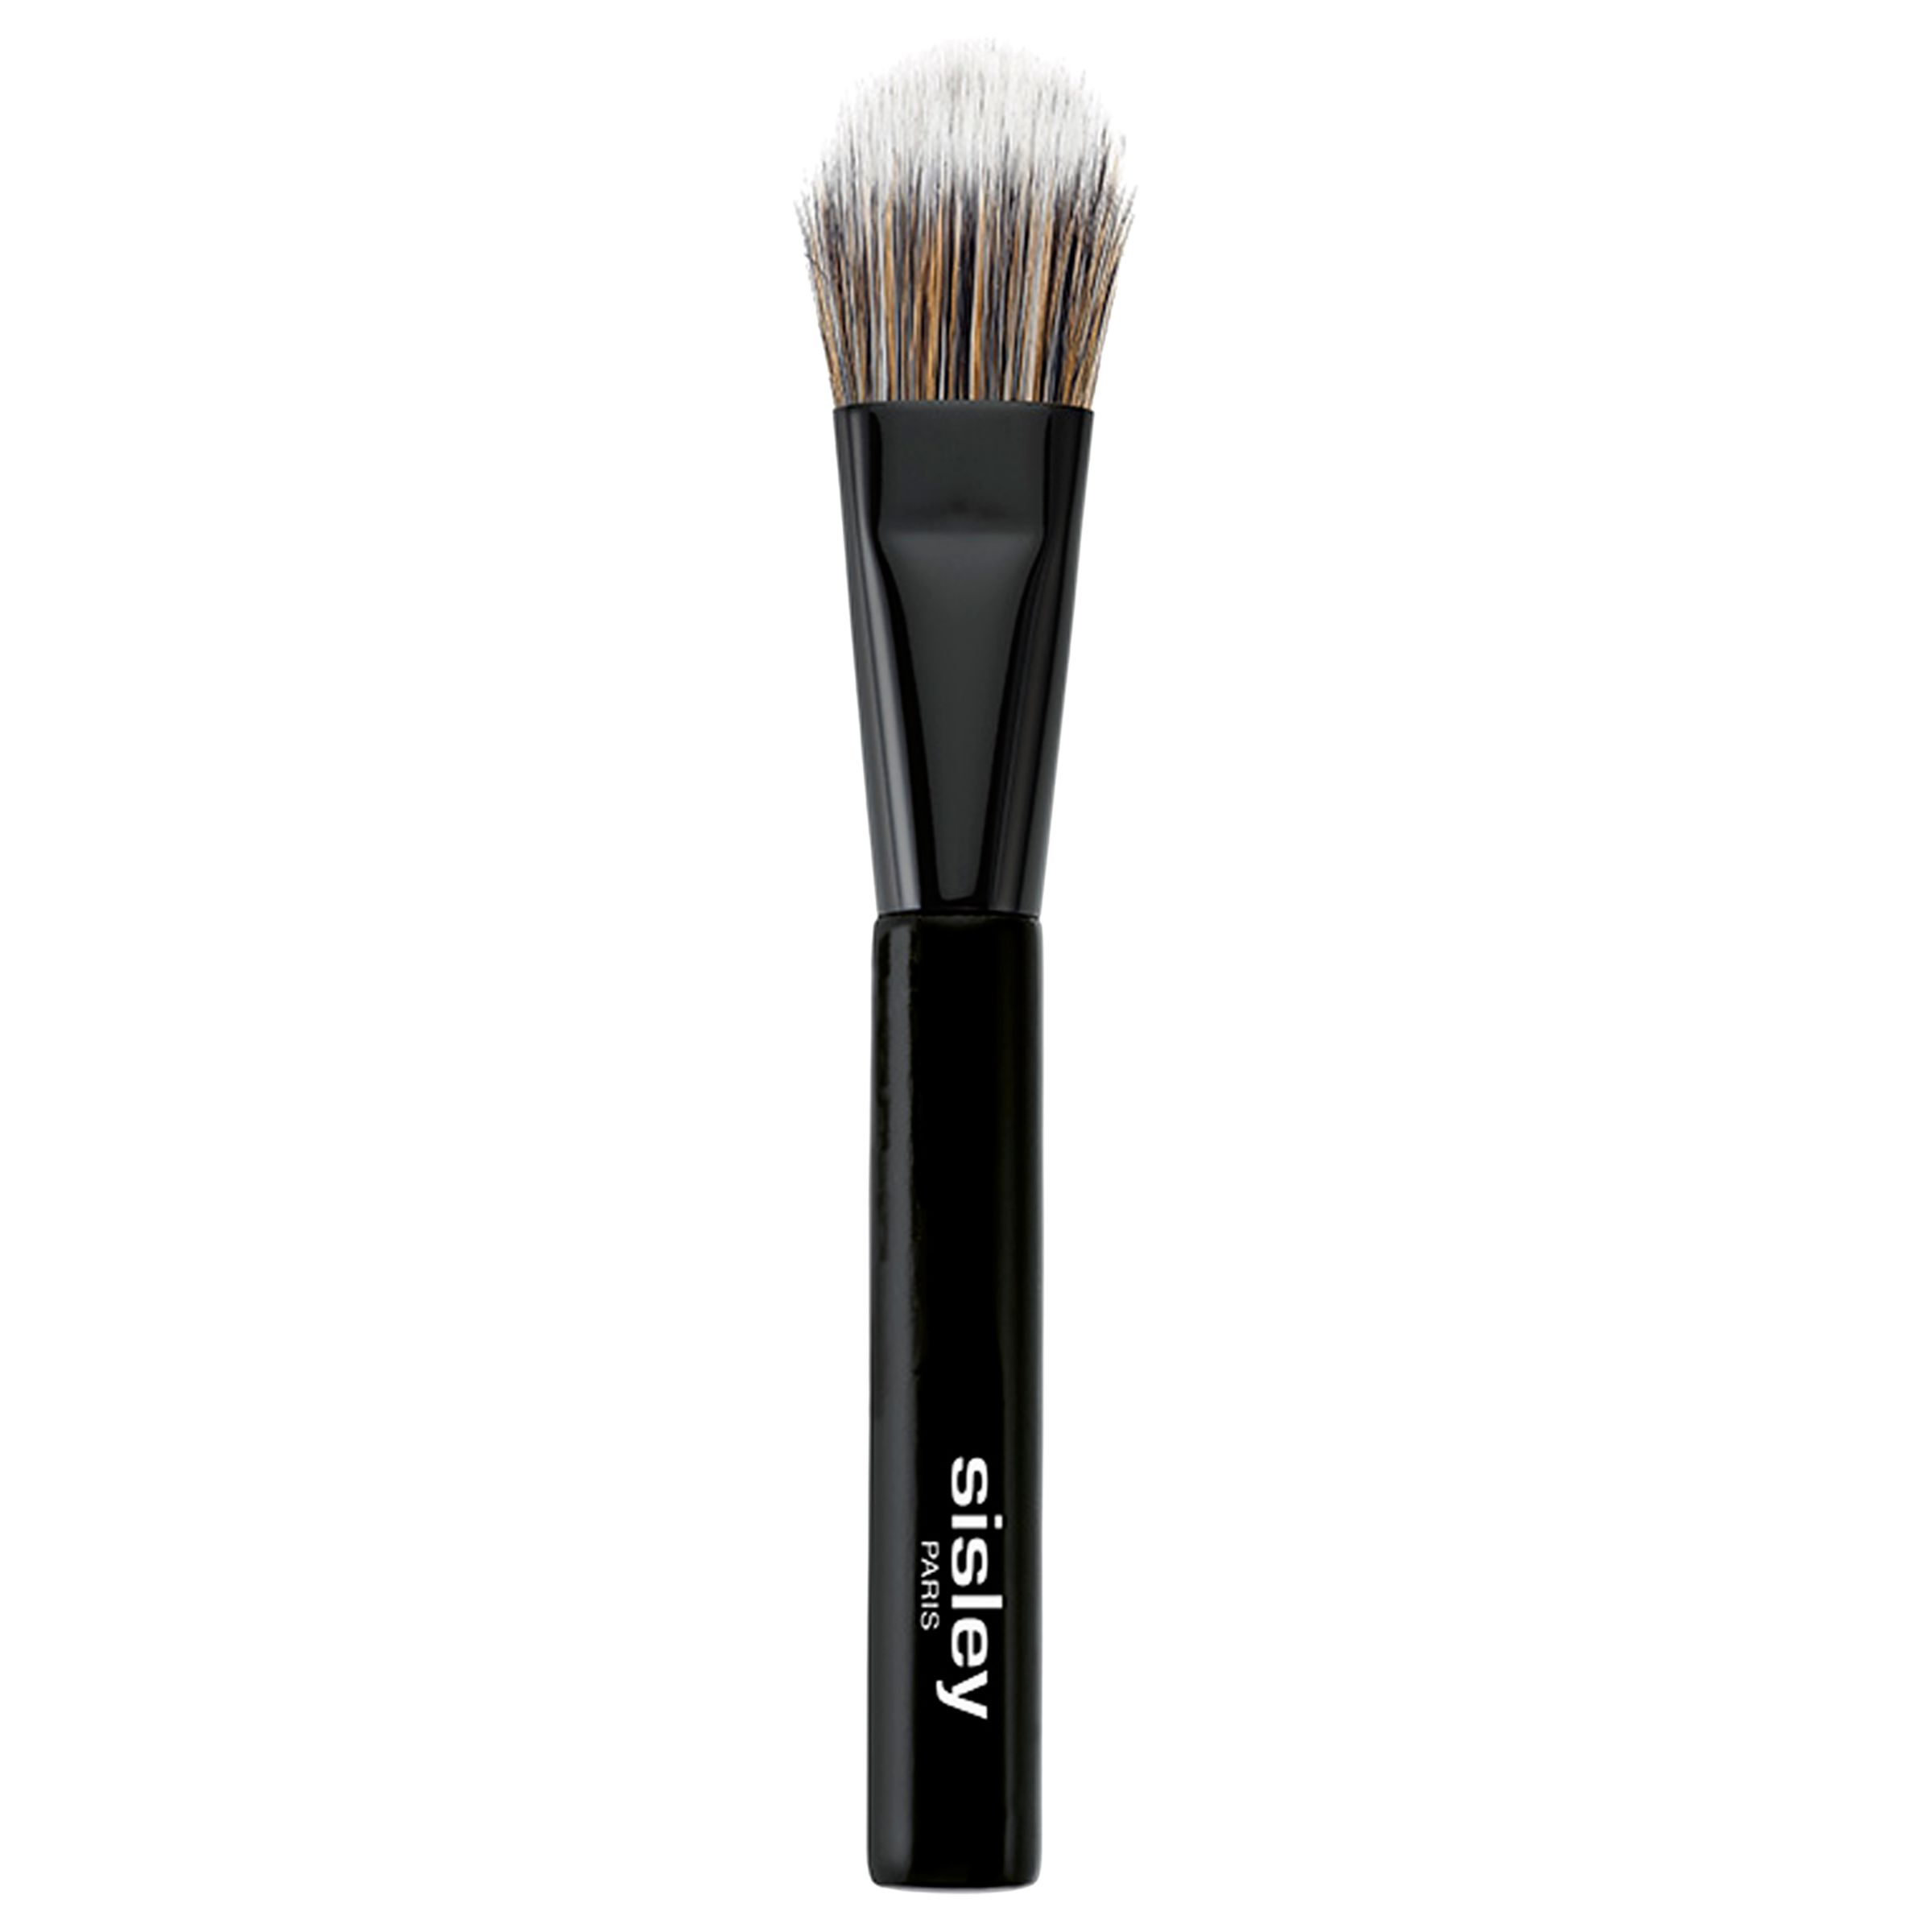 Sisley Sisley Fluid Foundation Brush